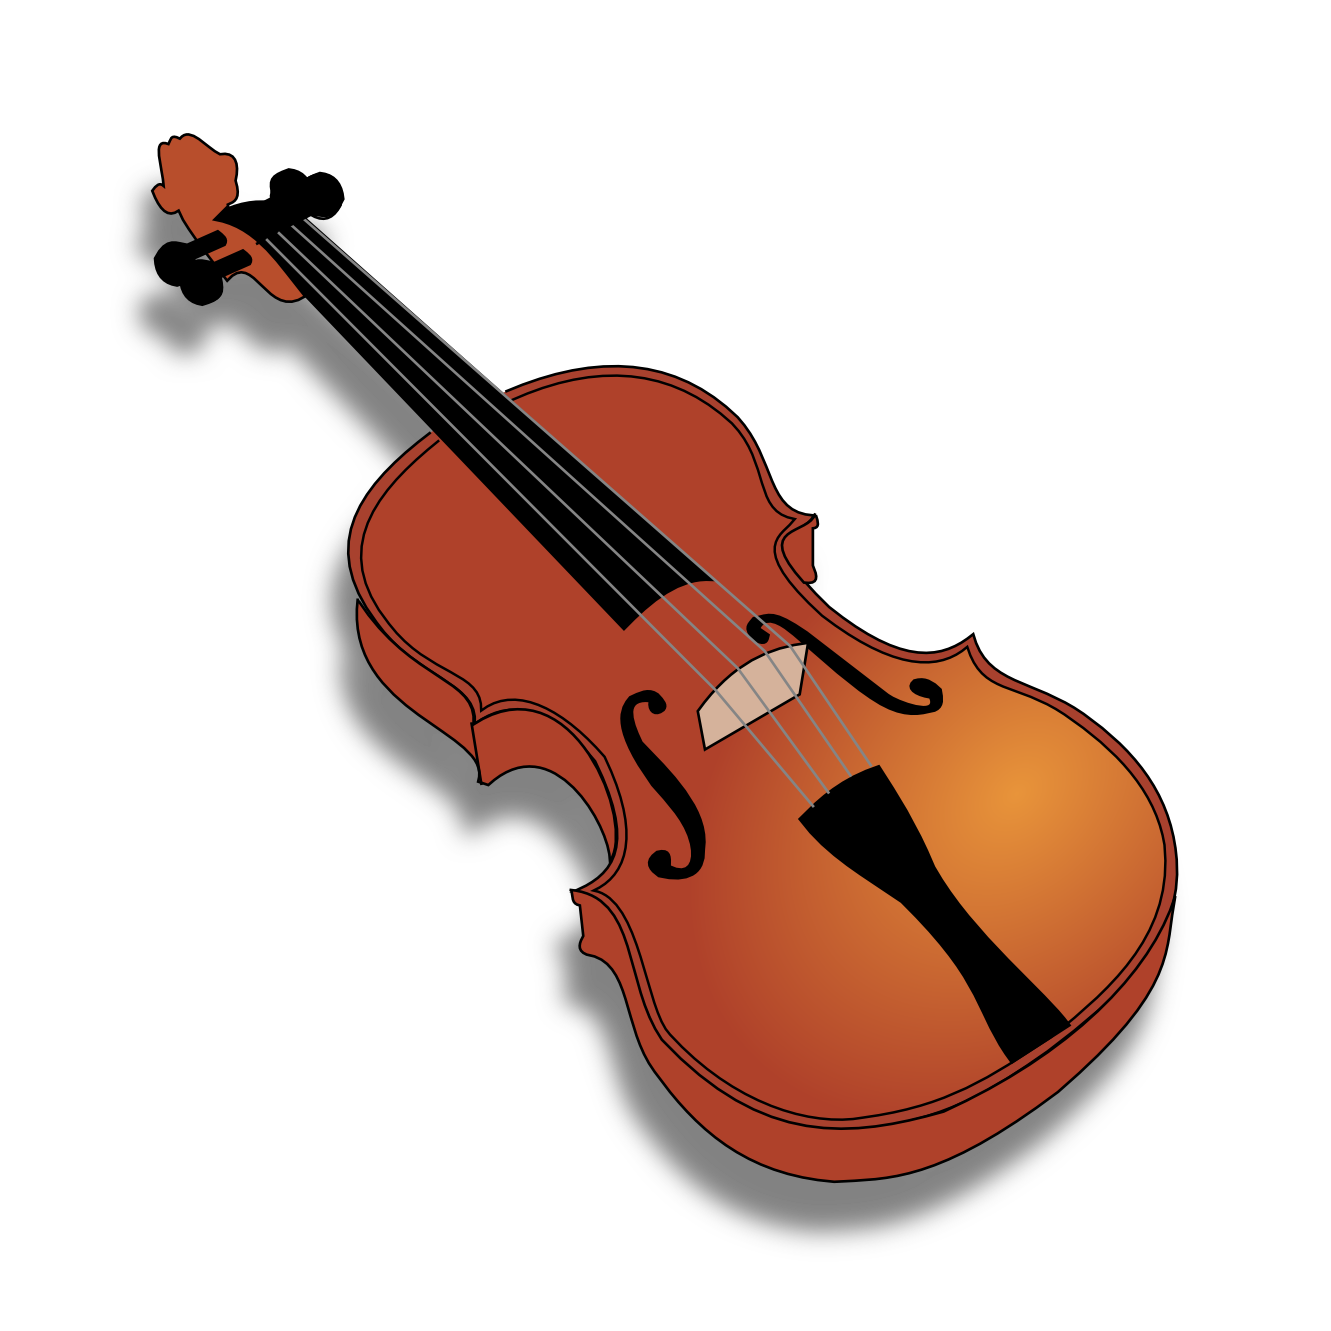 Violin pictures clip art banner royalty free Violin Clip Art Images | Clipart Panda - Free Clipart Images banner royalty free